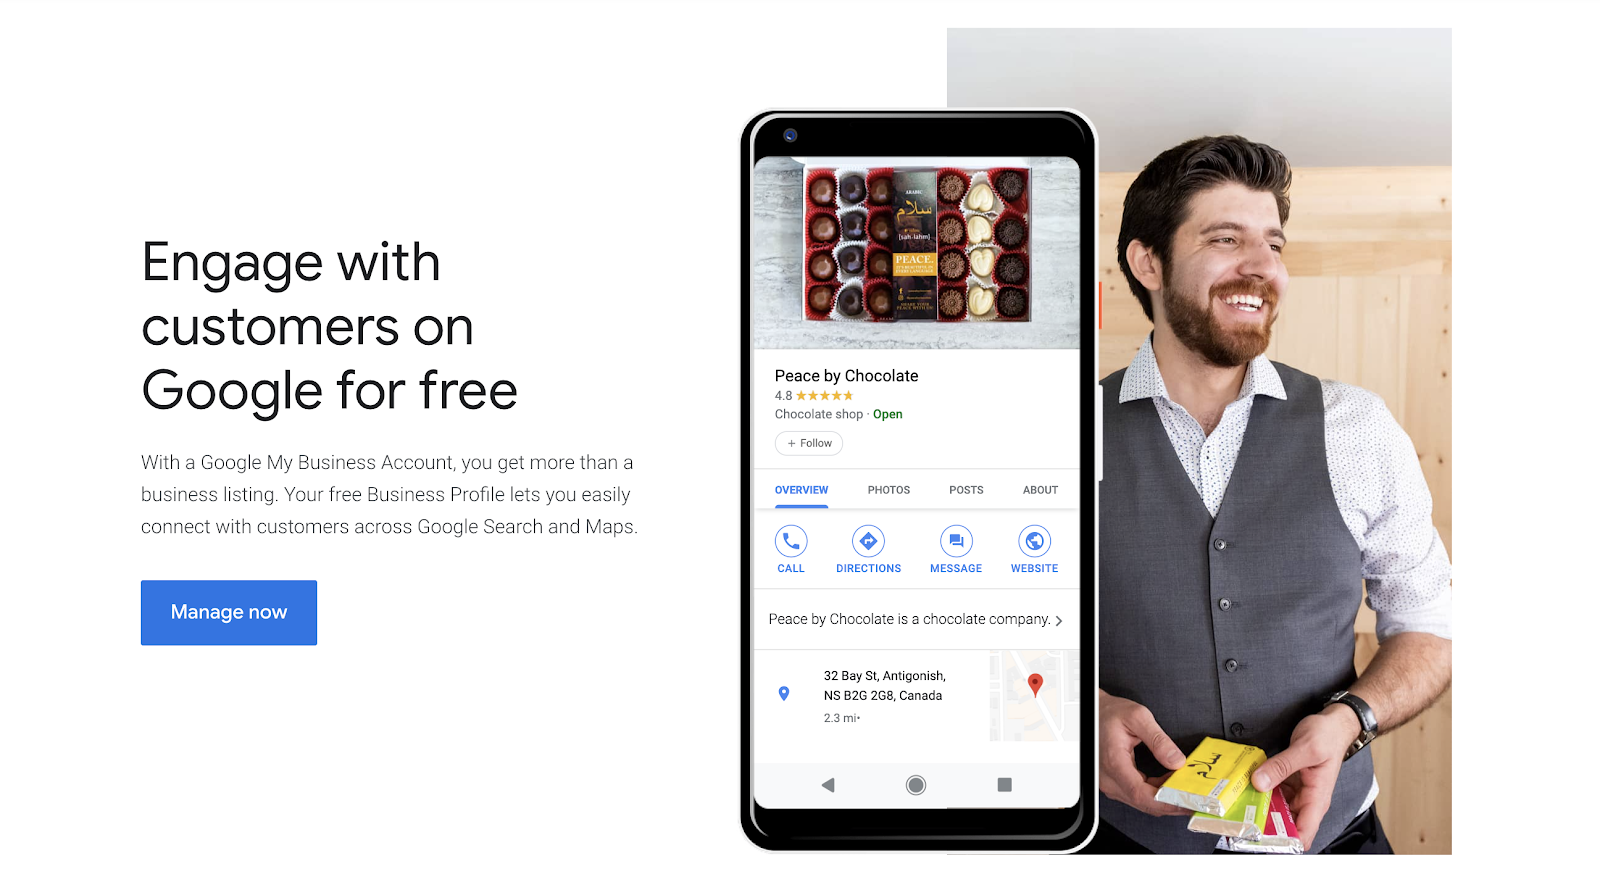 Happy man and Google My Business account displayed on a mobile device